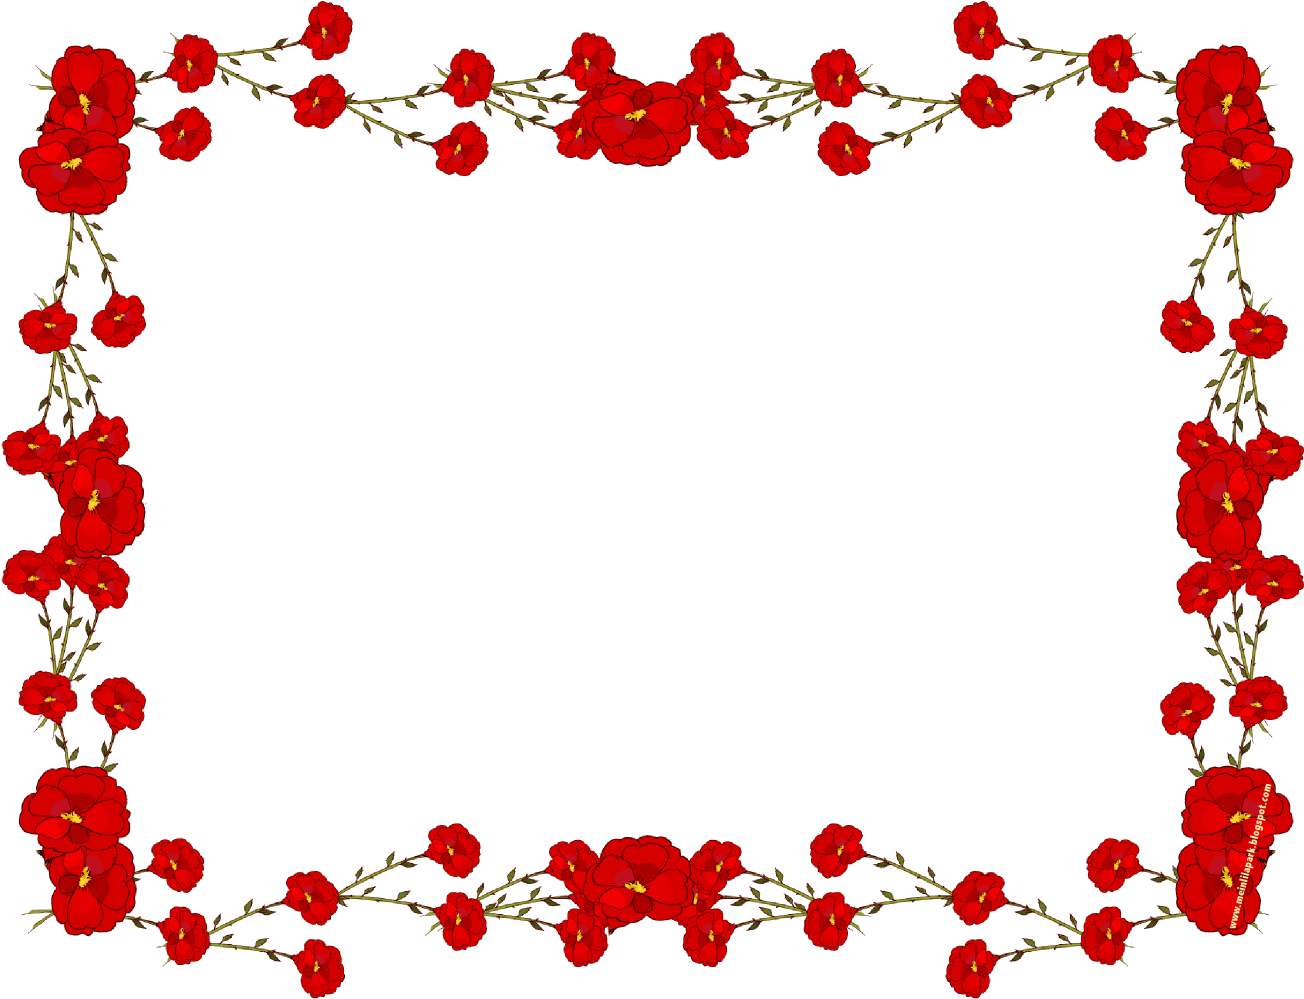 HD Red Roses Border Png.